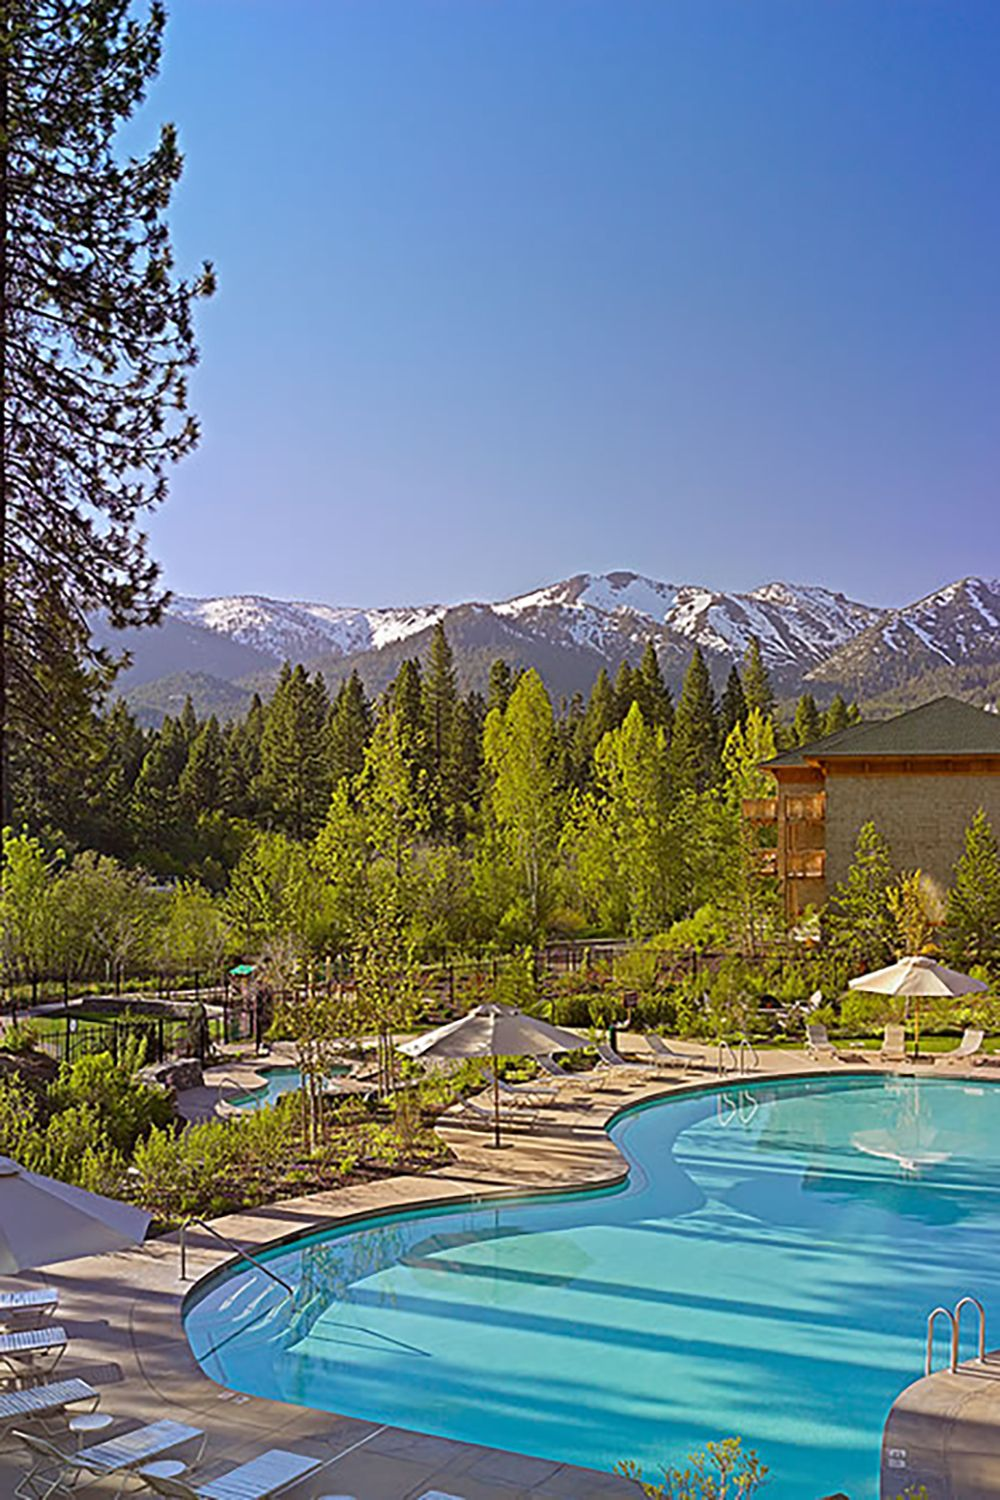 "<p>You'll want to maximize a spring skiing getaway with a little spa time, because there is nothing better than pampering yourself *while also being outdoors in nature*. (Hello, mountain views.) At <a href=""https://laketahoe.regency.hyatt.com/en/hotel/activities/hotel-activities/spa.html"">Stillwater Spa</a>, you can enjoy all that and aprè<span class=""redactor-invisible-space""></span><span class=""redactor-invisible-space""></span>s-ski specific treatments like a 50-minute boot relief or reflexology treatment, a Moroccanoil Hydration and Exfoliation ritual (it's important to keep well hydrated during and after a day on the slopes), or a deep tissue massage.&nbsp&#x3B;<span data-redactor-tag=""span"" data-verified=""redactor""></span></p>"